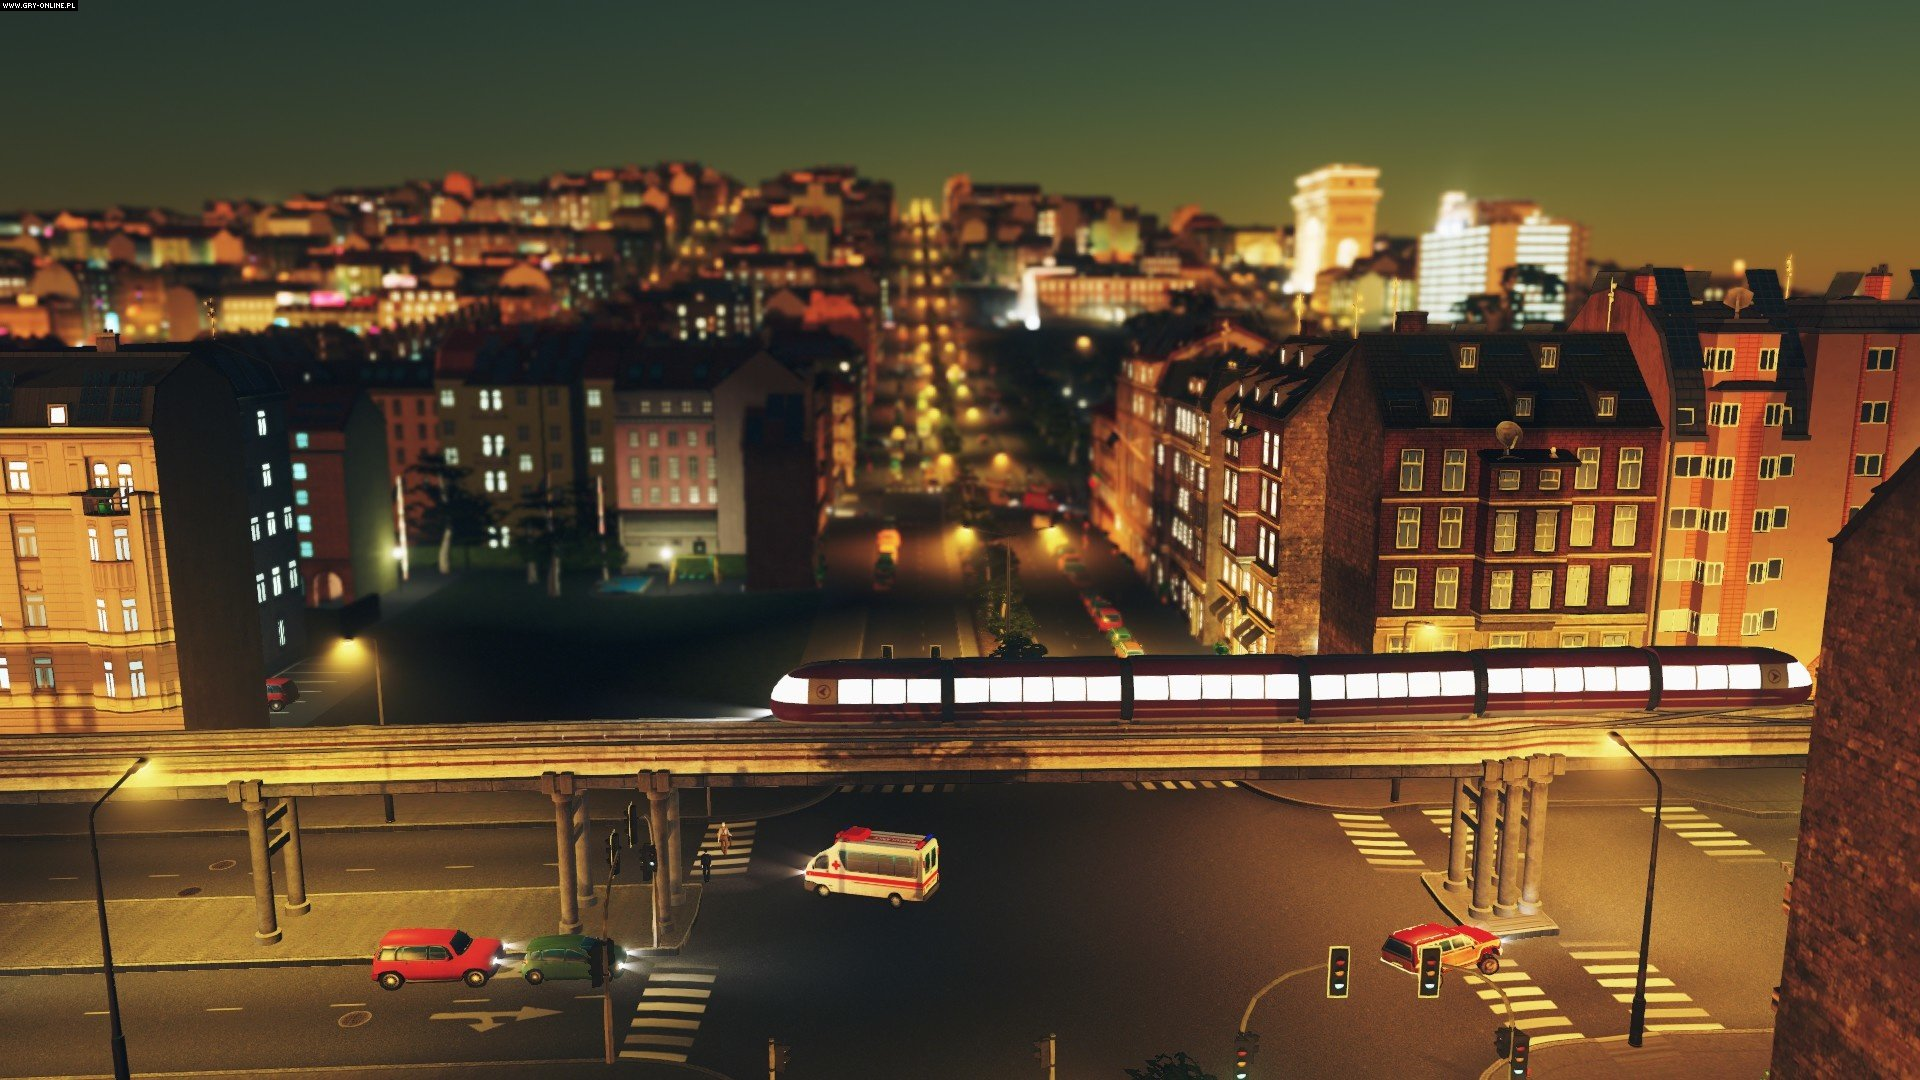 Cities: Skylines - Mass Transit PC Games Image 3/11, Colossal Order, Paradox Interactive